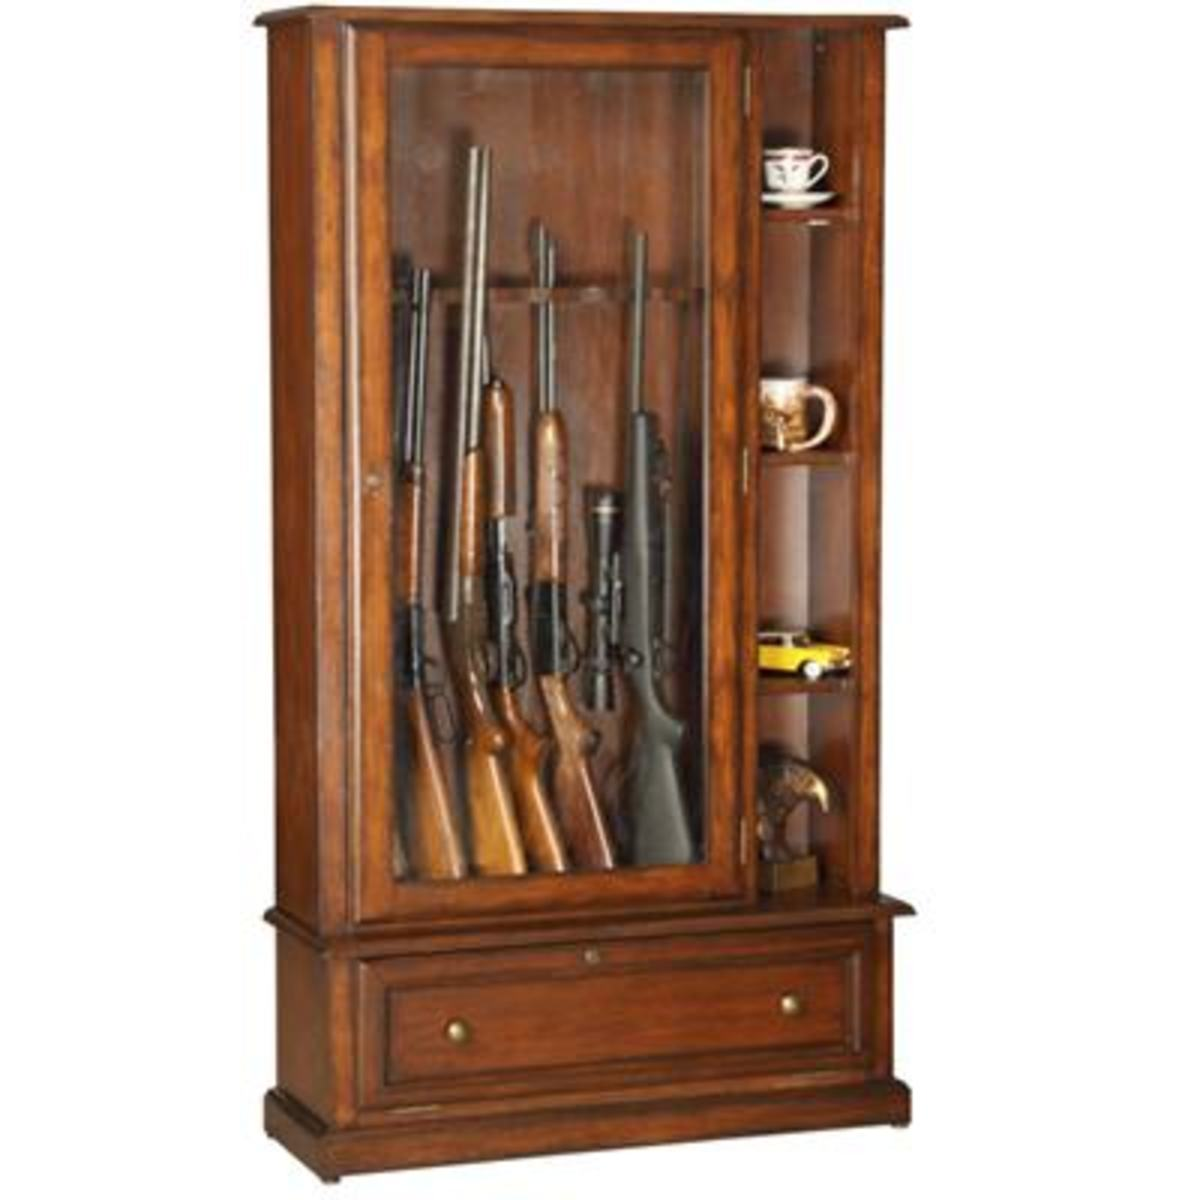 Wooden Den Cabinets ~ Wooden gun cabinet for your home